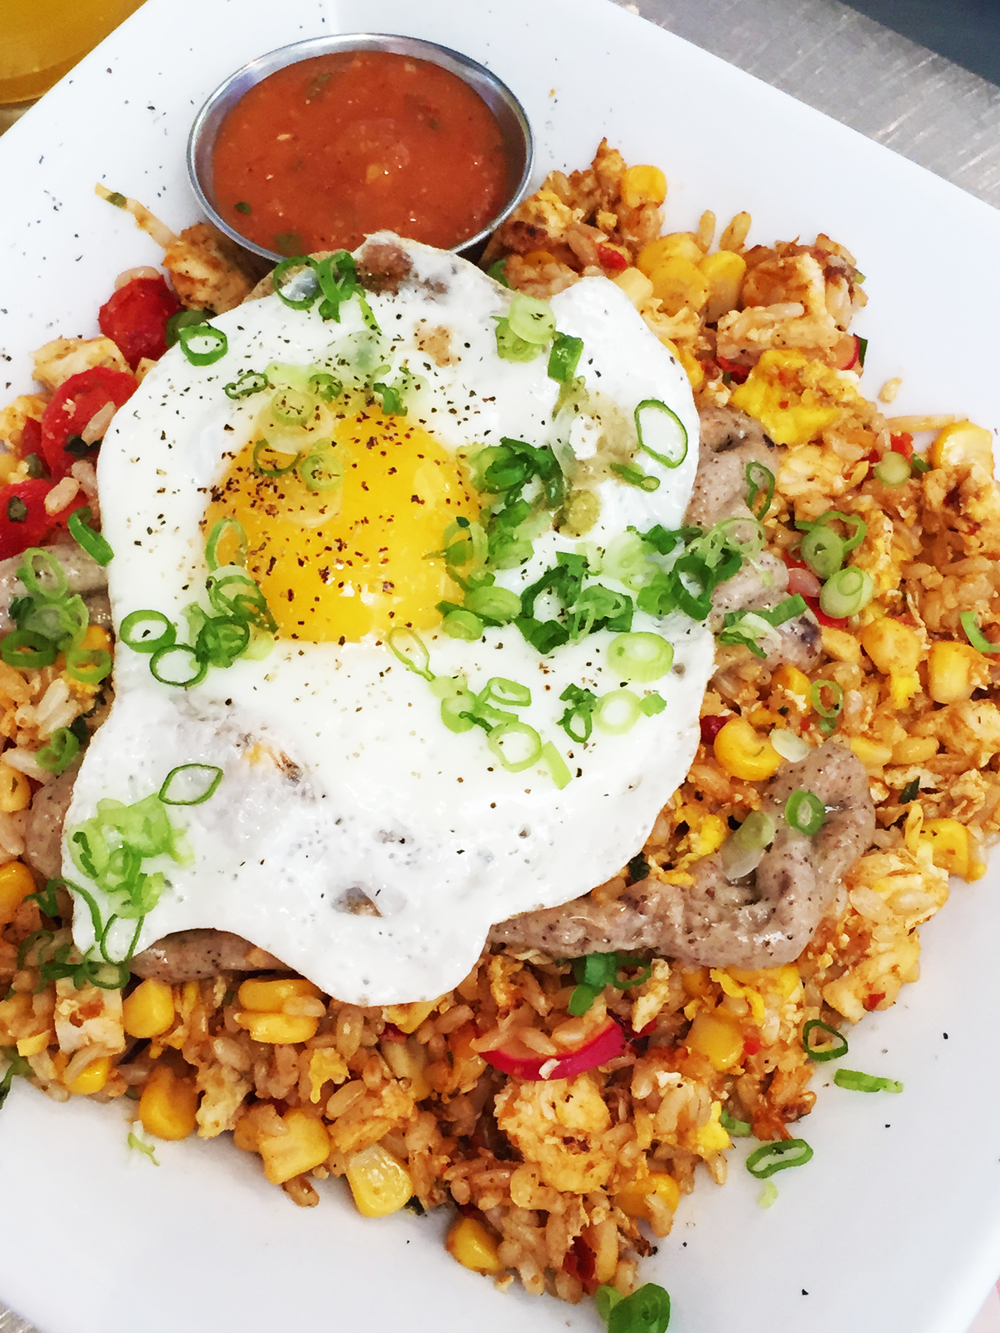 Nasi Goreng - Indonesian fried rice with garlic aioli and corn salad topped off with green onions and a sunny side egg (and optional chicken).